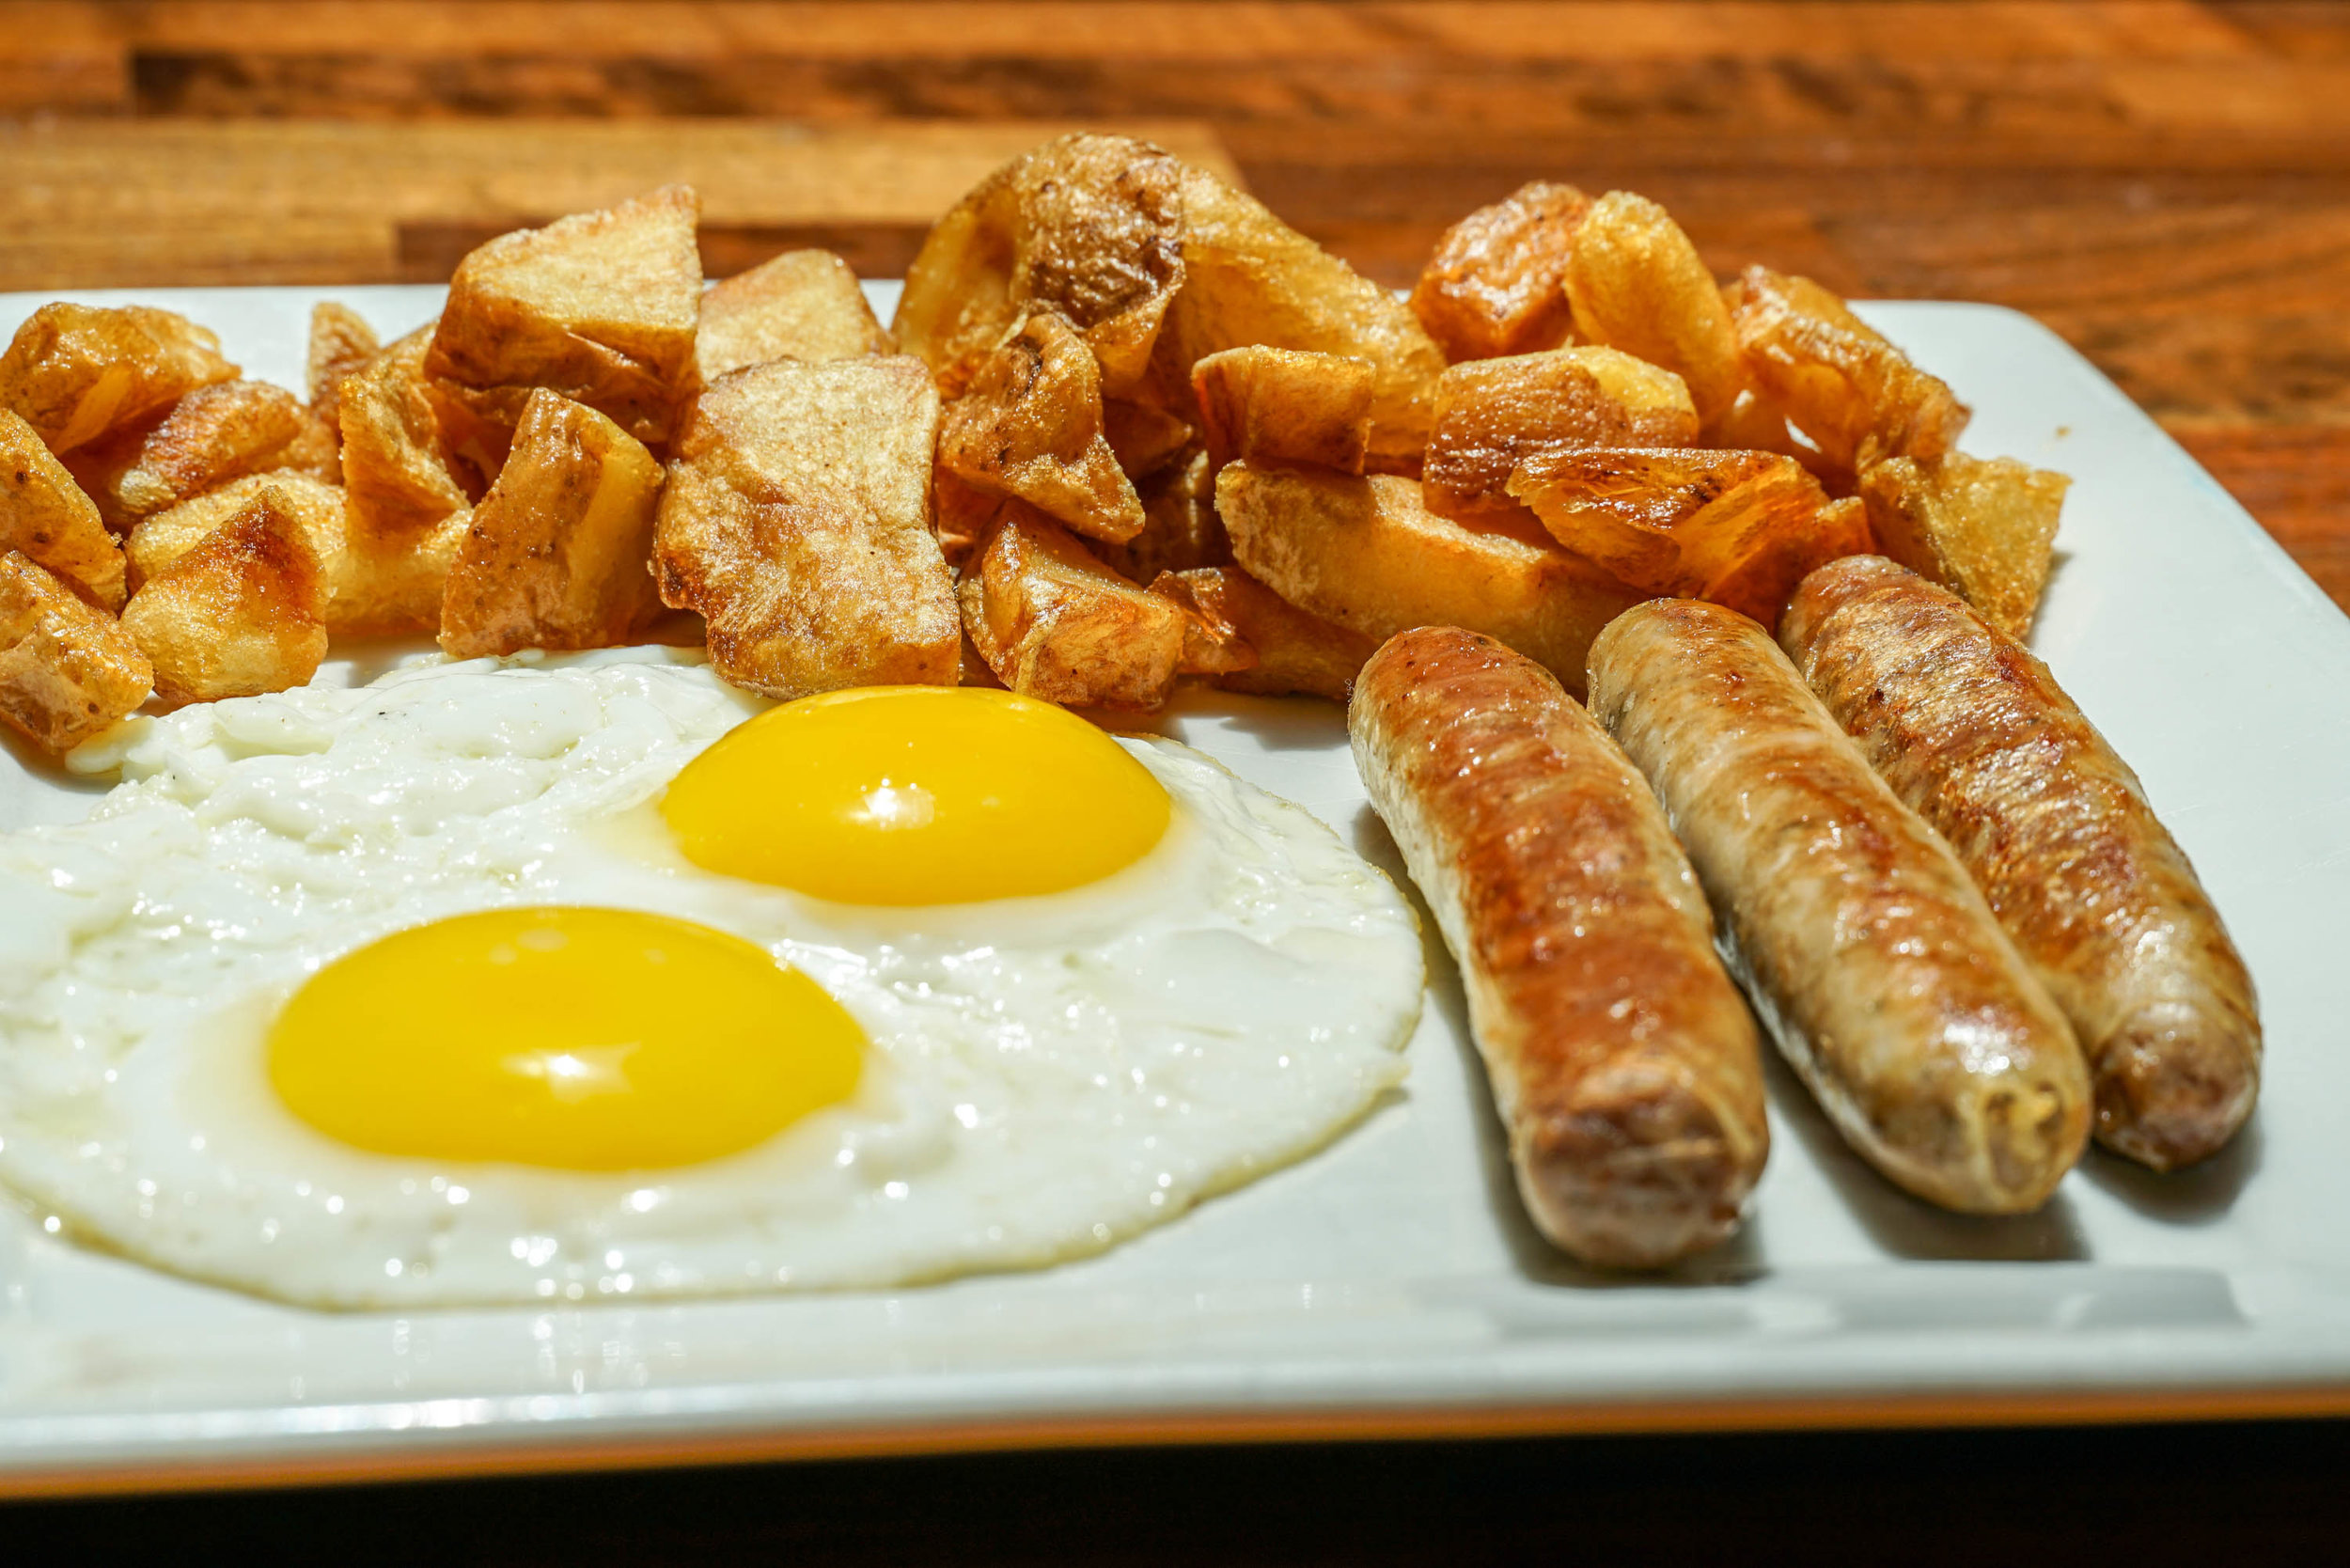 sunny side eggs, organic turkey sausage and Oregon red potatoes